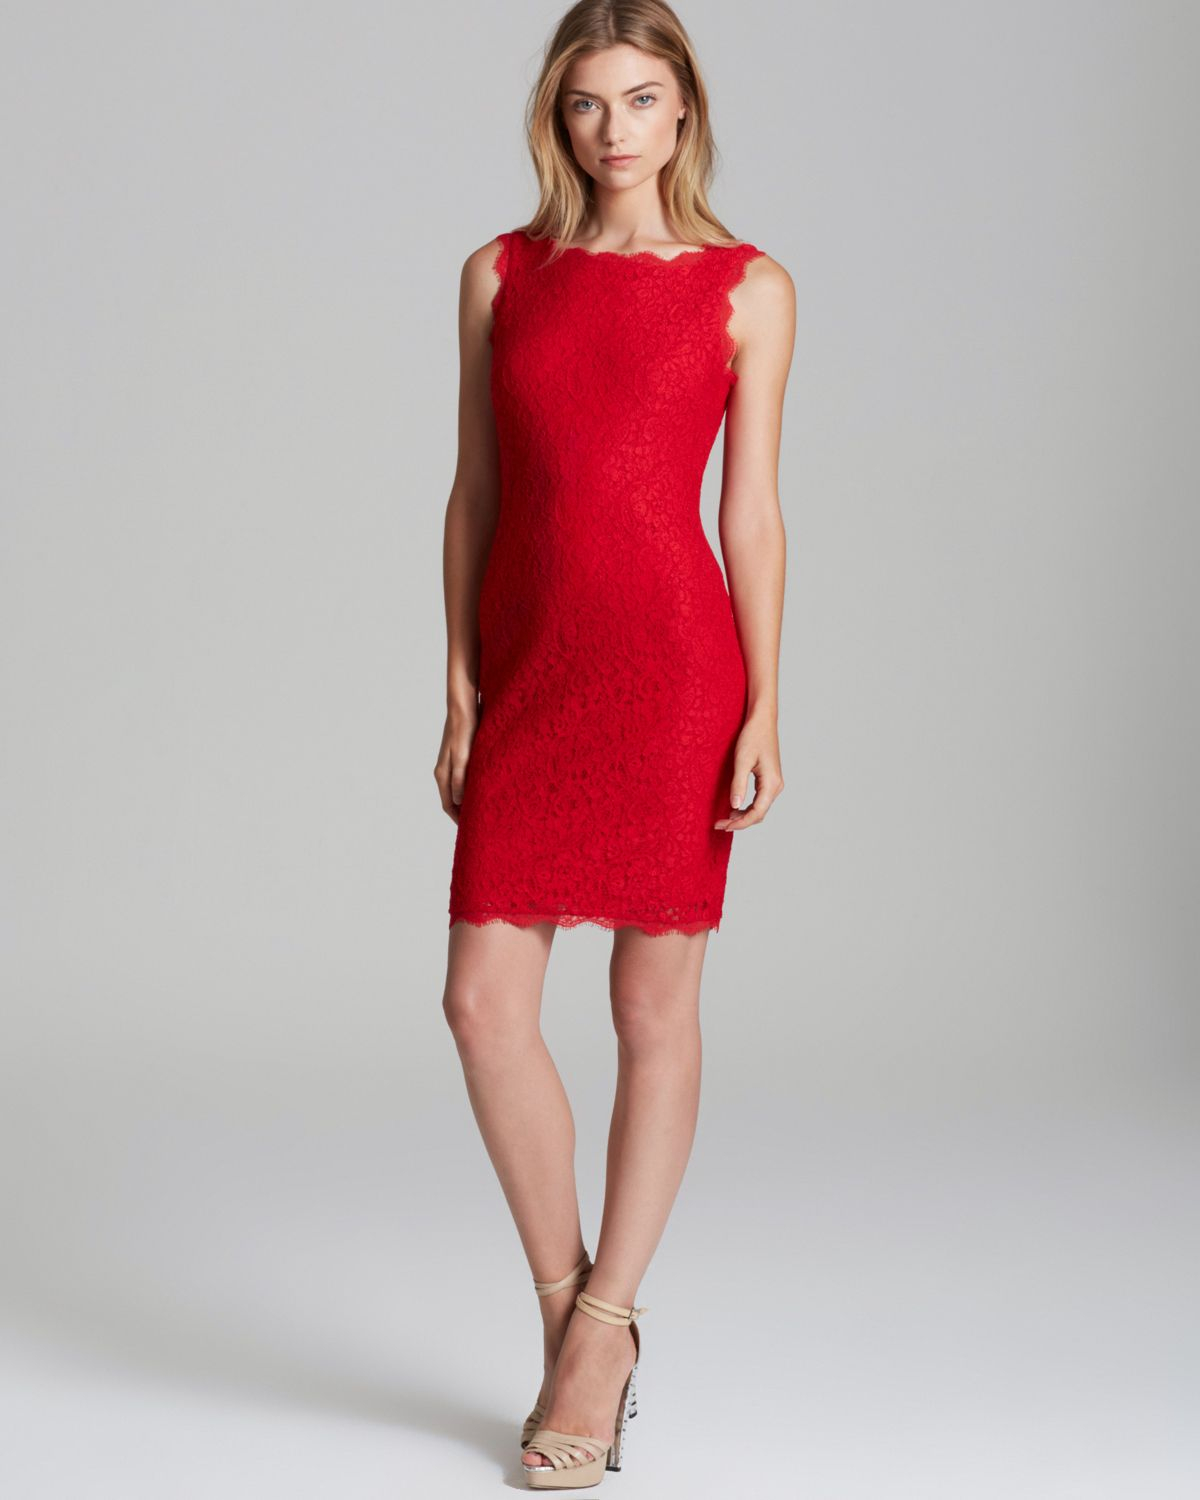 Adrianna papell Sleeveless Lace Shift Dress in Red | Lyst